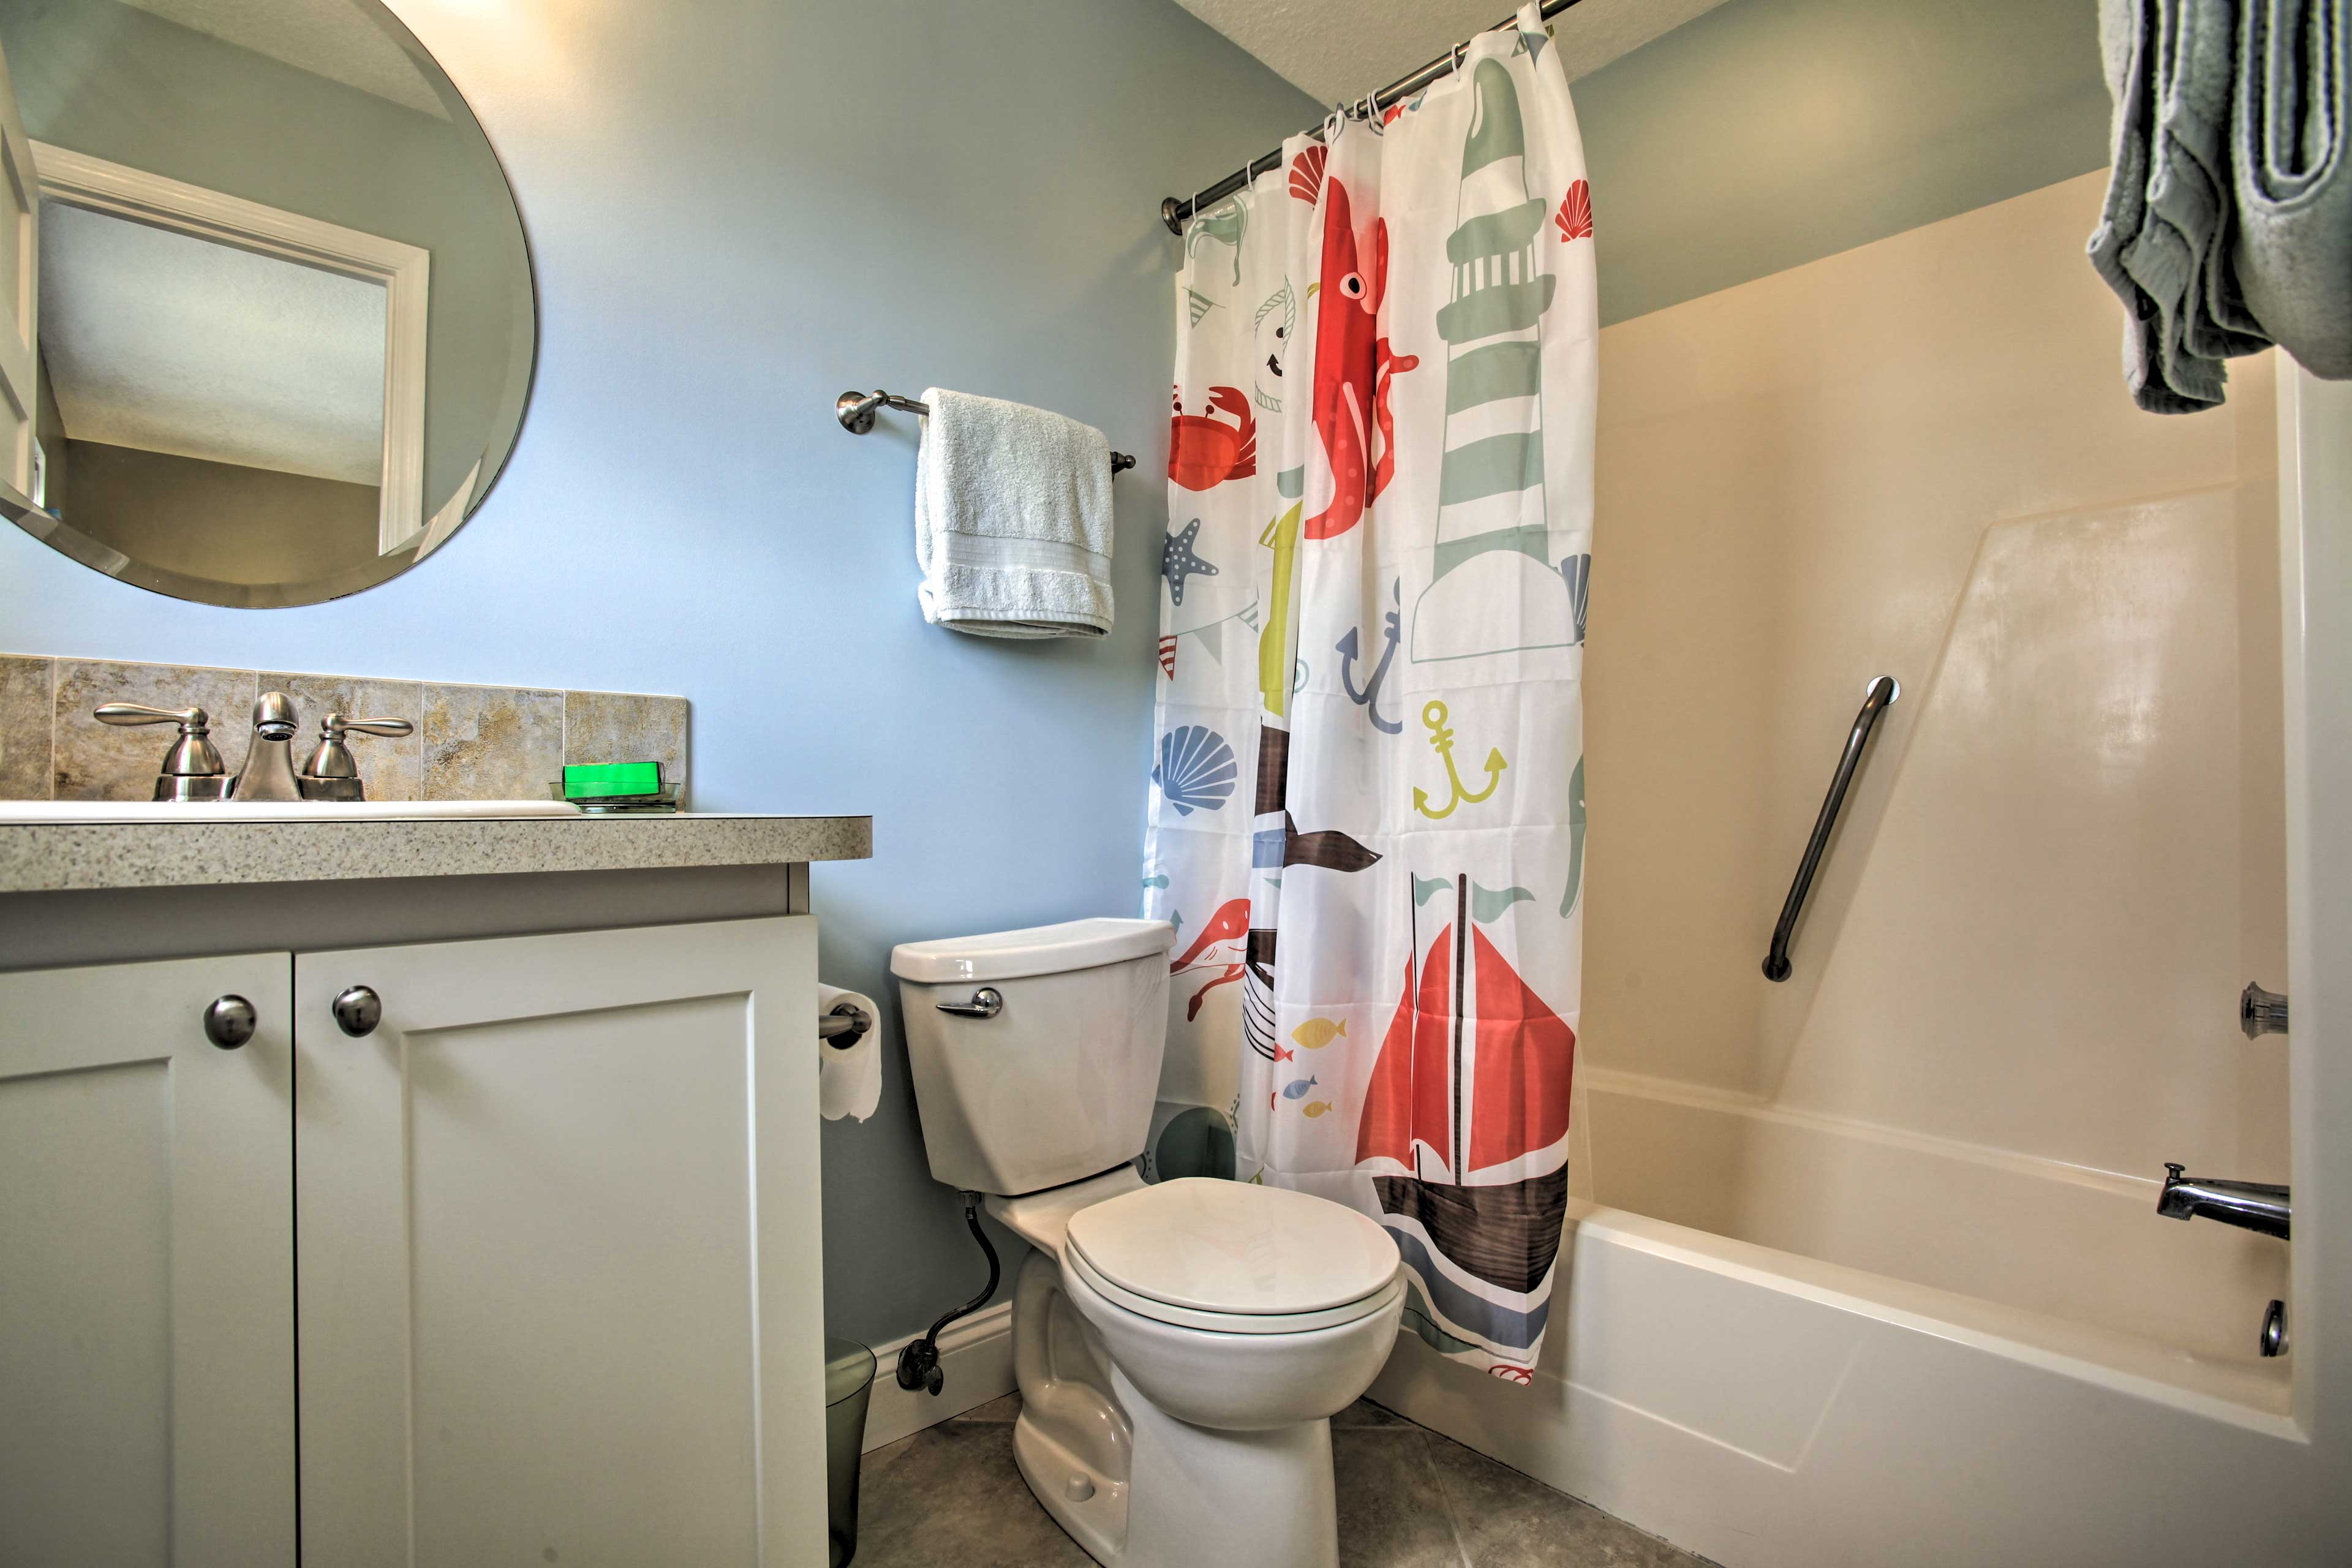 There are 2.5 bathrooms in the home.